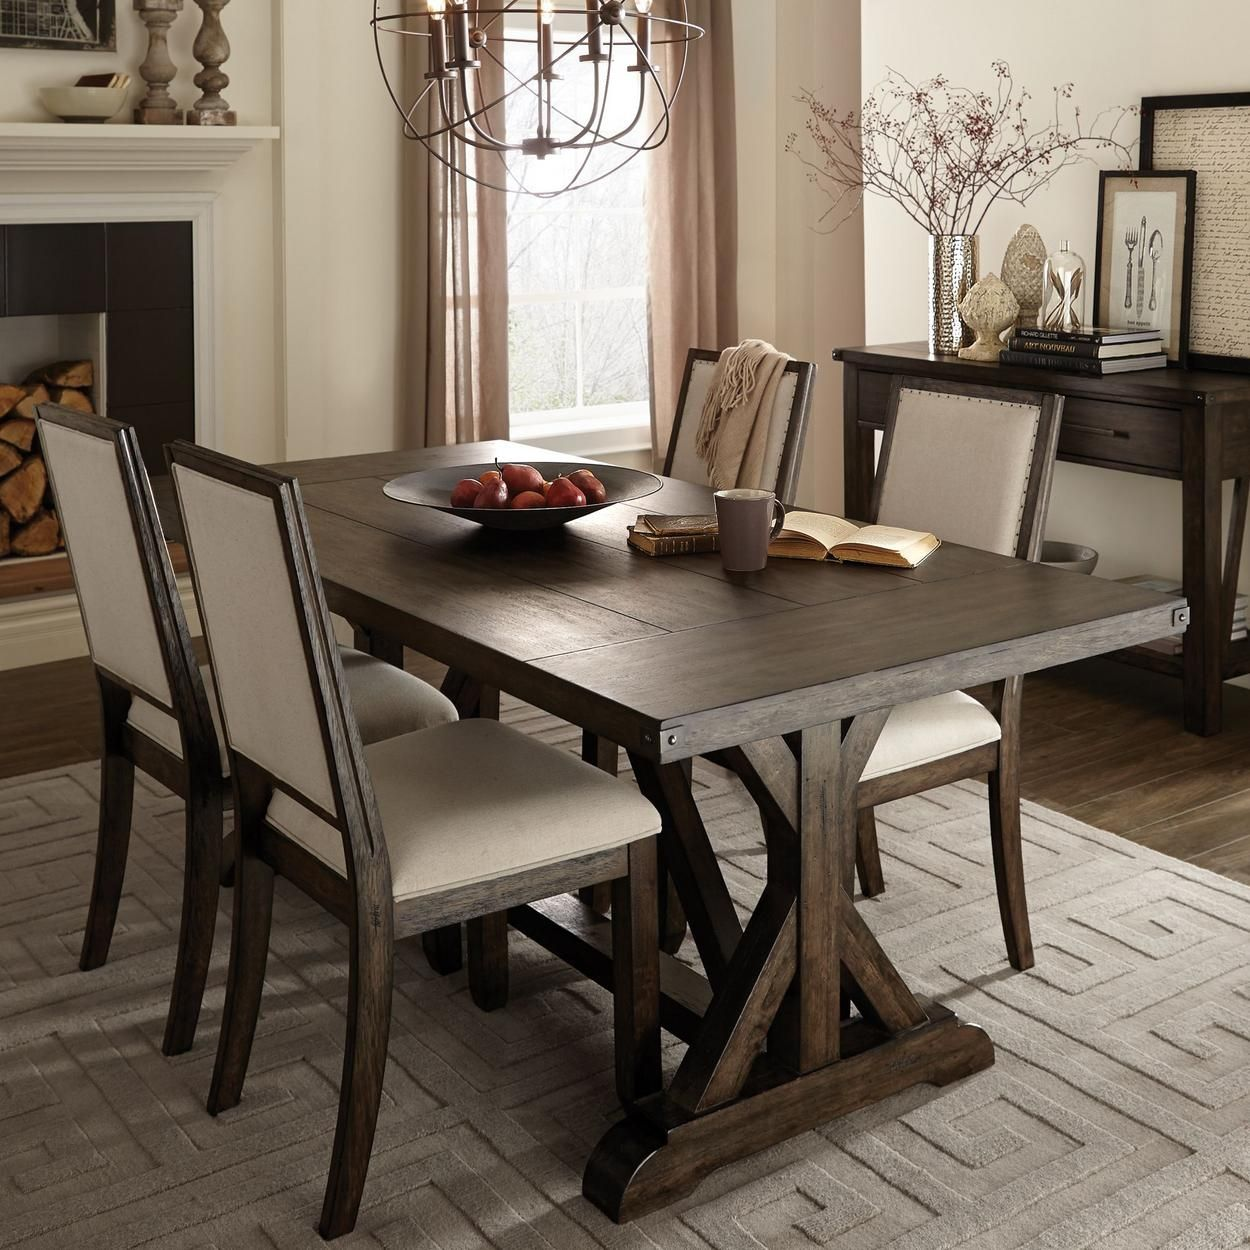 Sears Dining Room Chairs | http://fmufpi.net | Pinterest